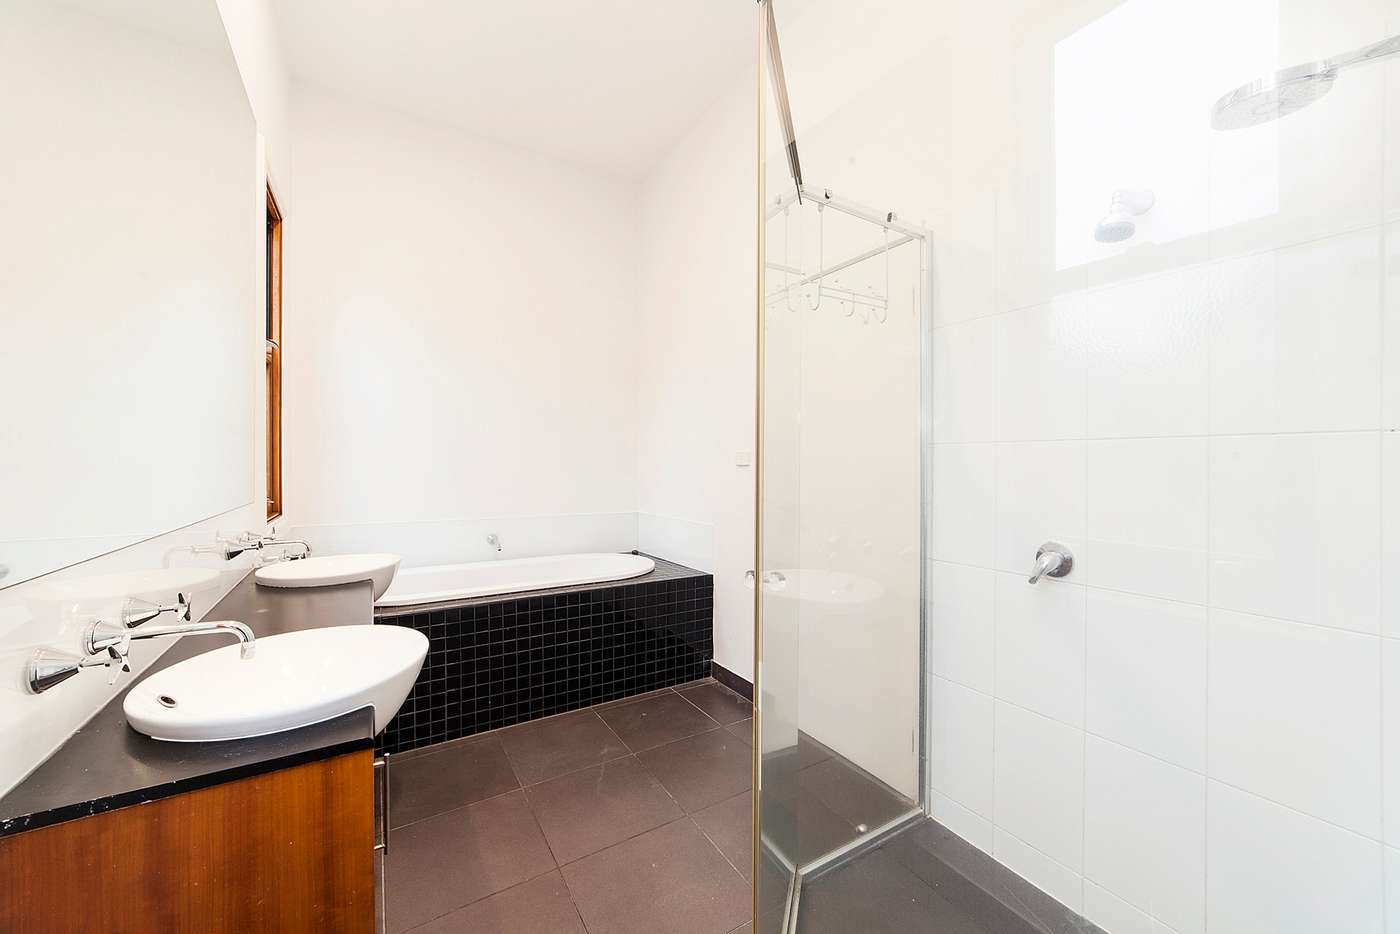 Sixth view of Homely house listing, 96 Pentland Parade, Yarraville VIC 3013